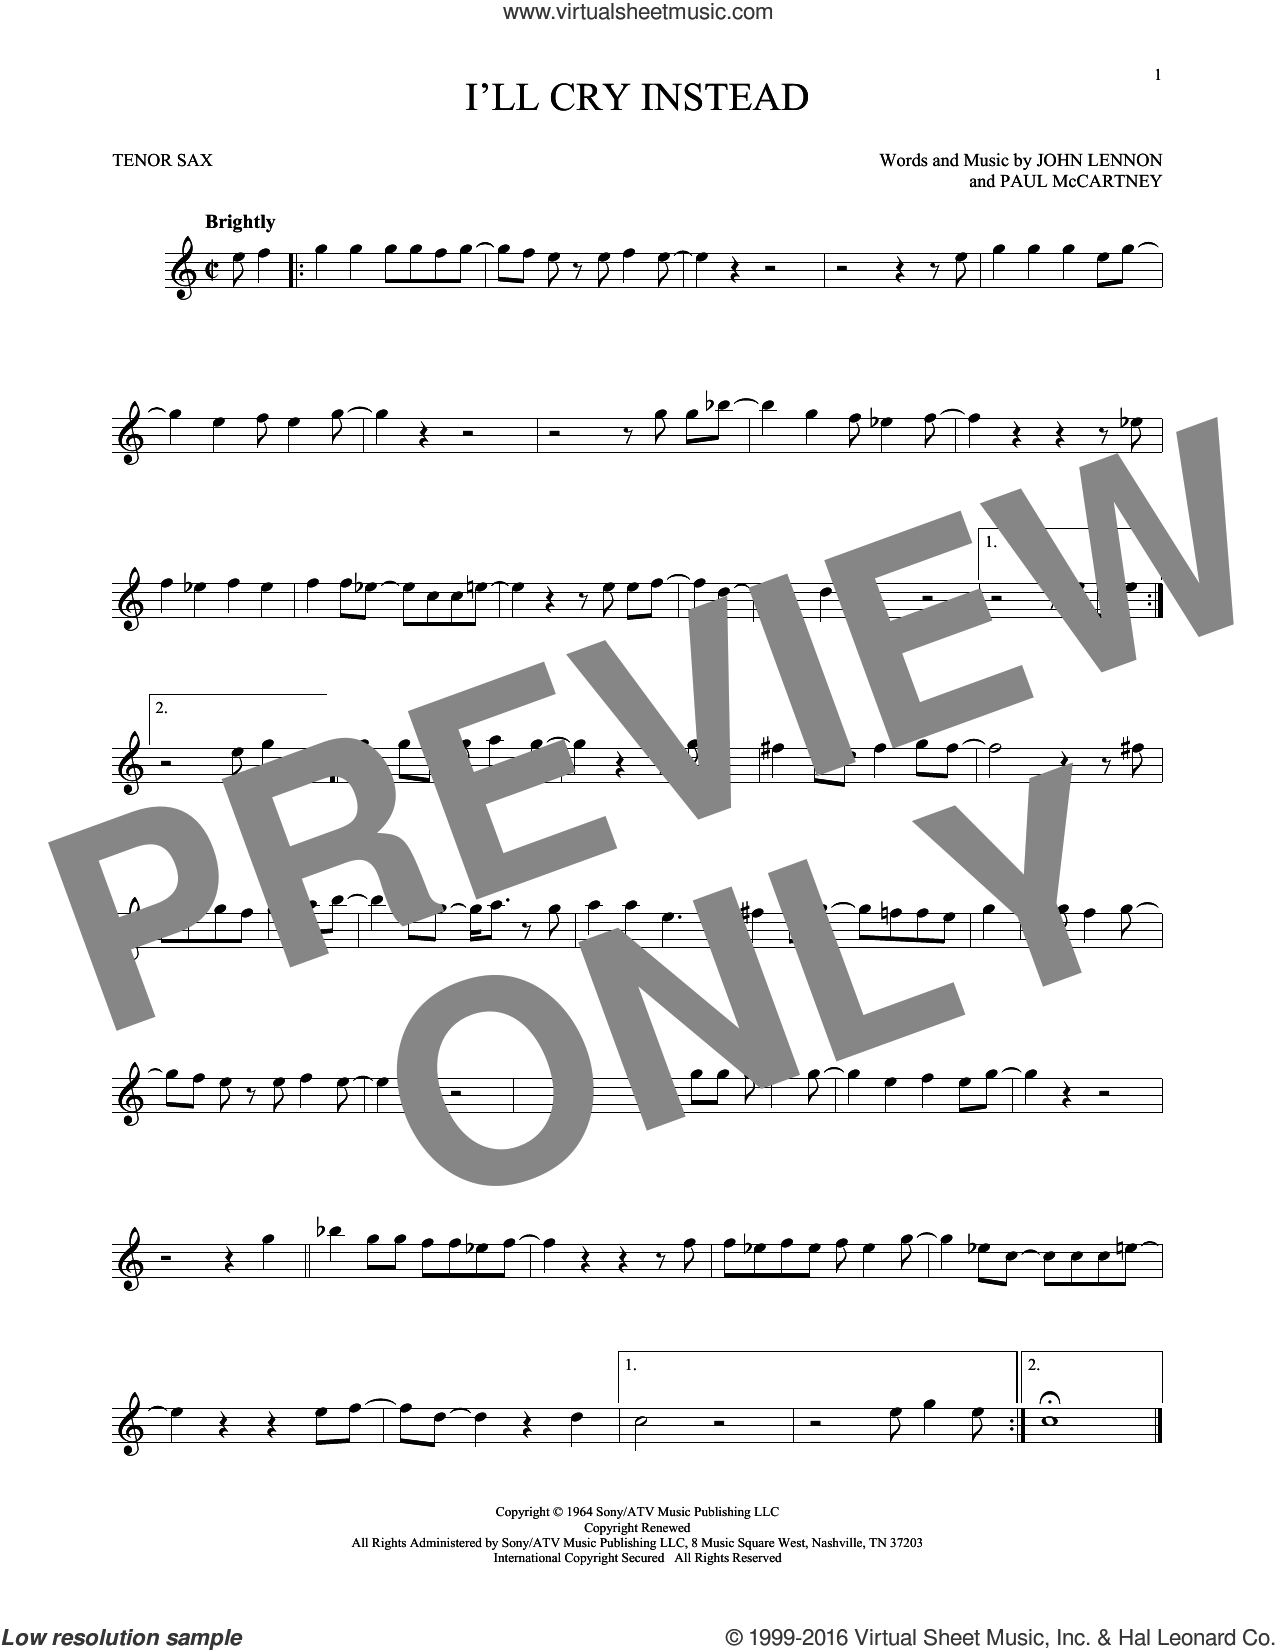 I'll Cry Instead sheet music for tenor saxophone solo by Paul McCartney